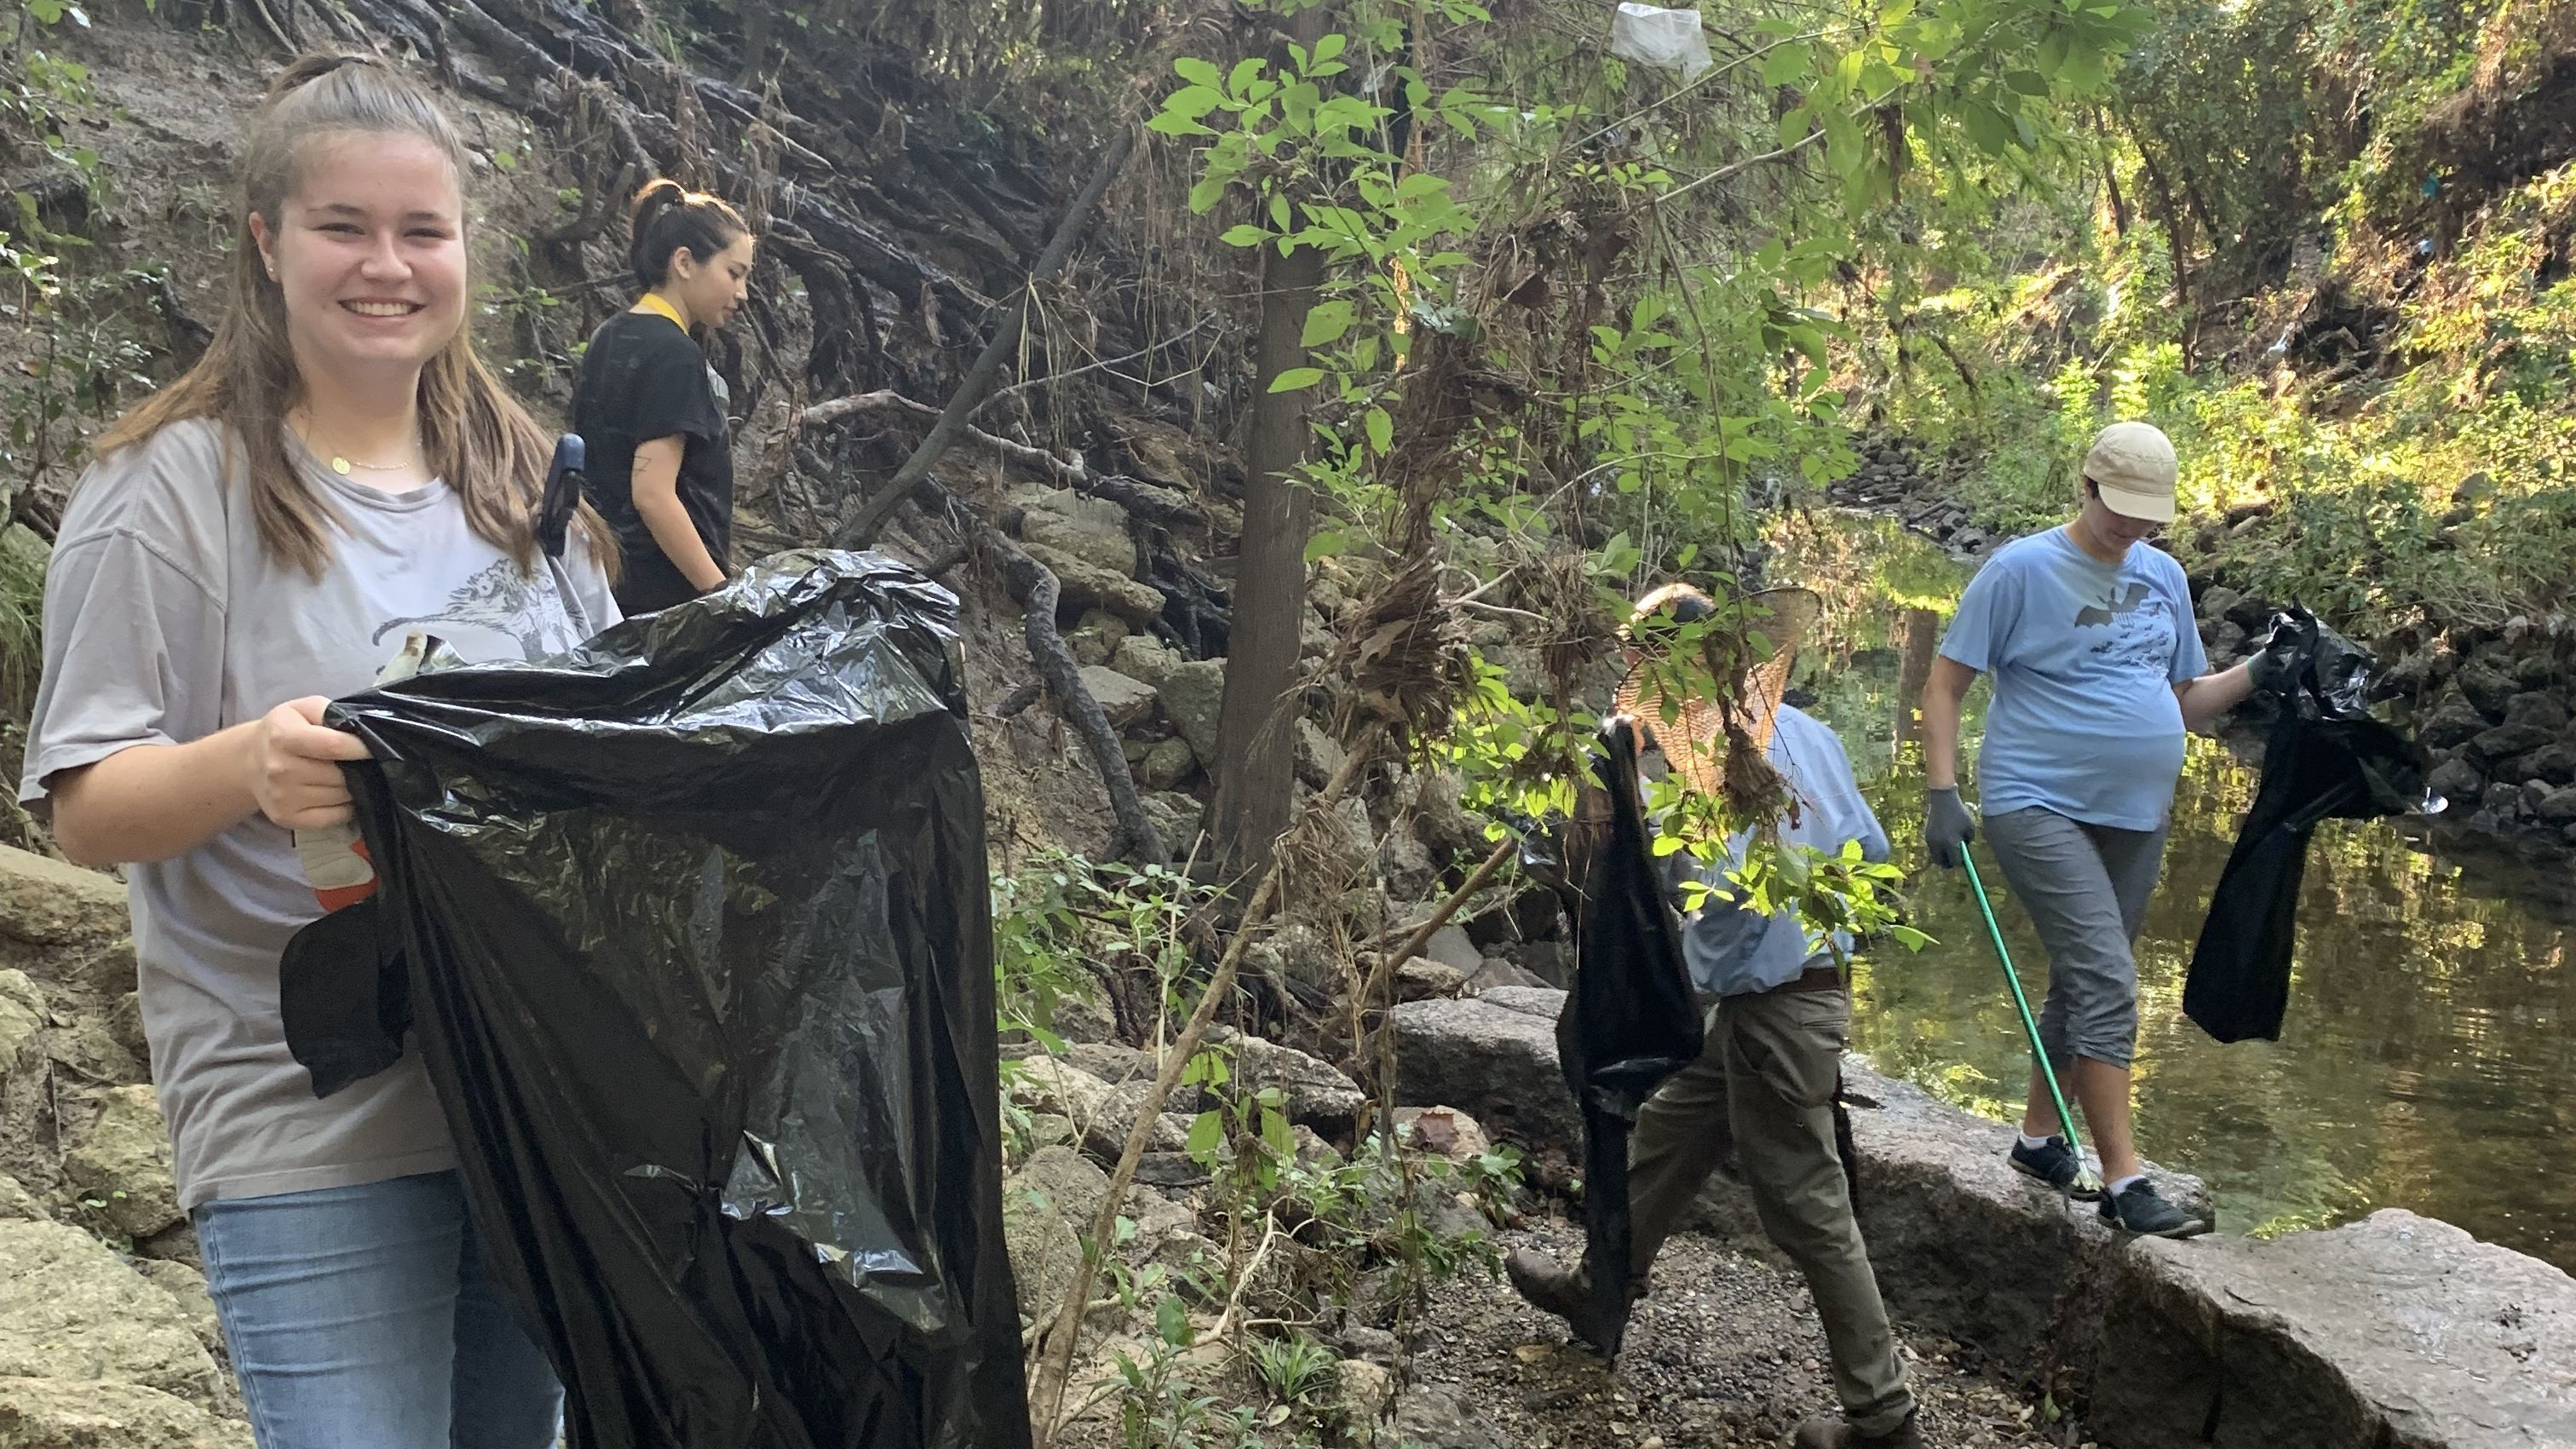 Volunteers smiling and cleaning up litter on the stream bank